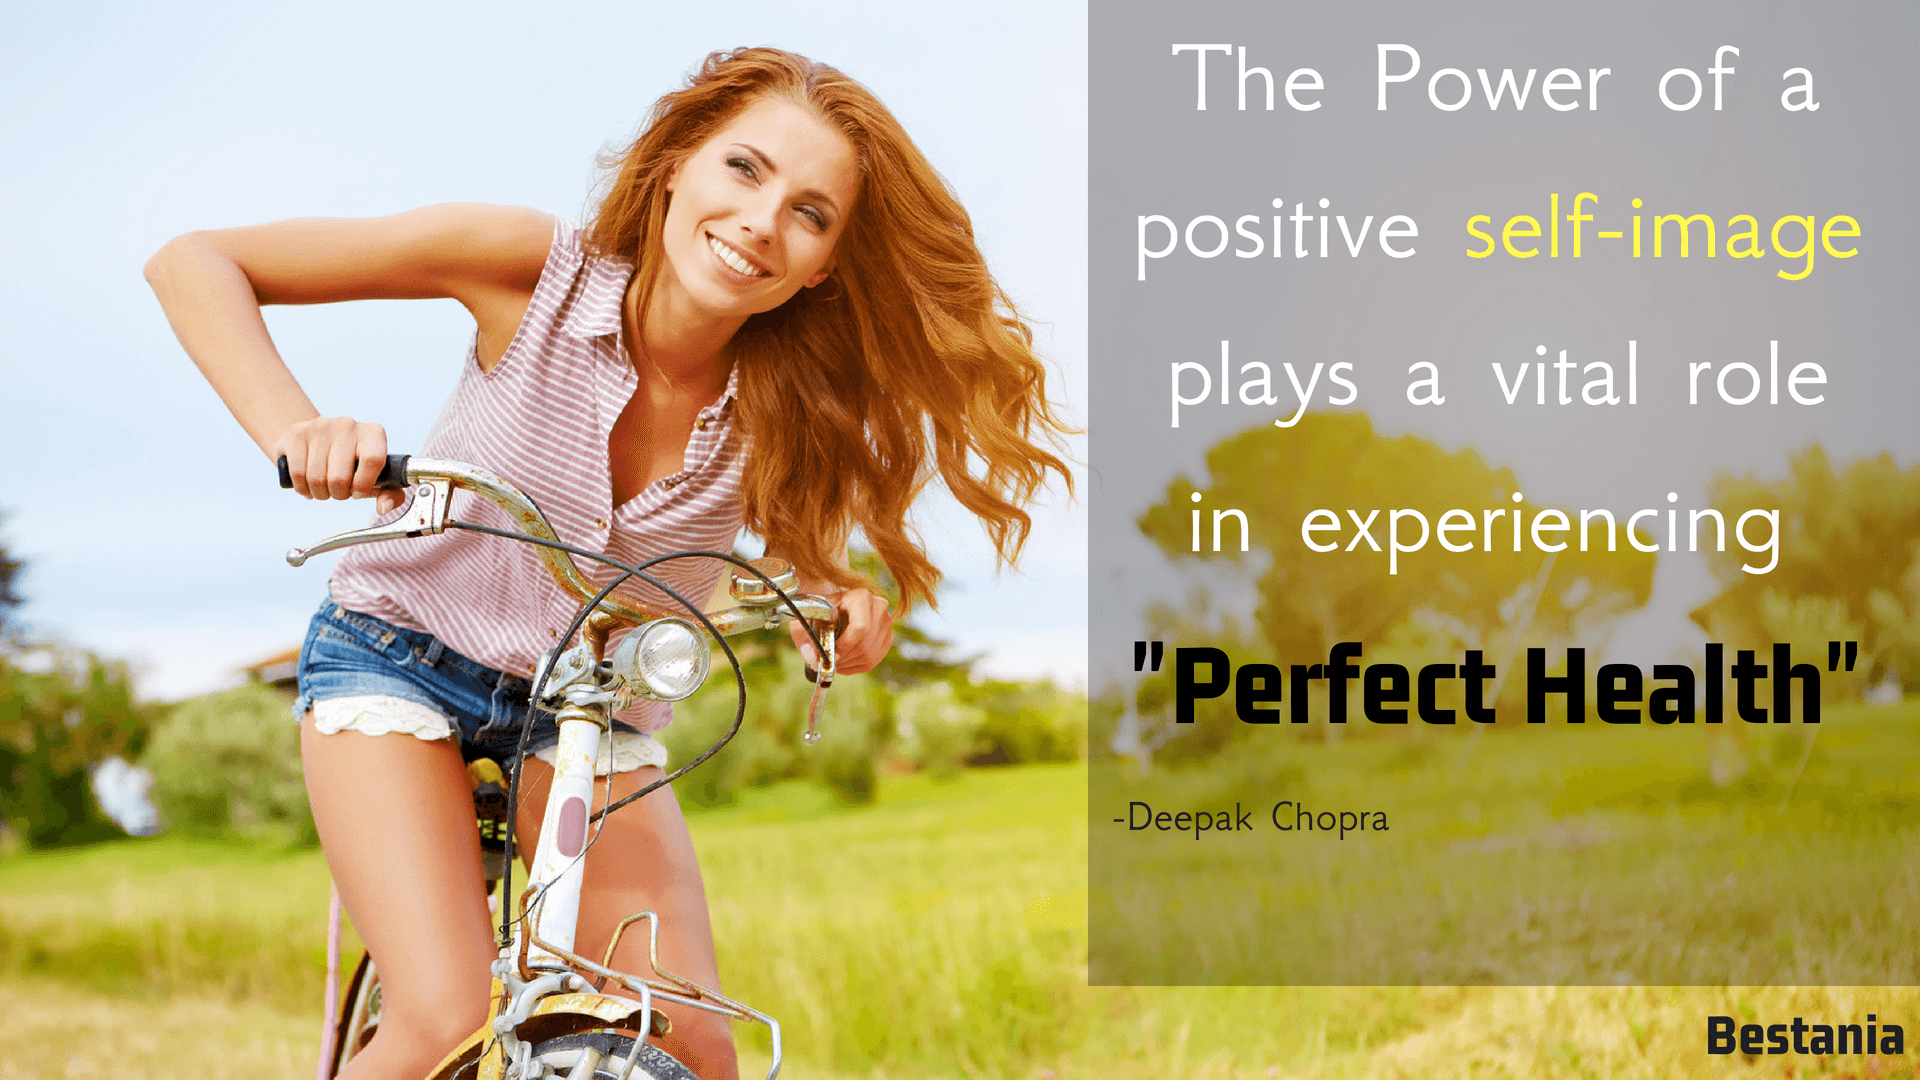 THE POWER OF A POSITIVE SELF  IMAGE PLAYS A VITAL ROLE IN PERFECT HEALTH. – DEEPAK CHOPRA